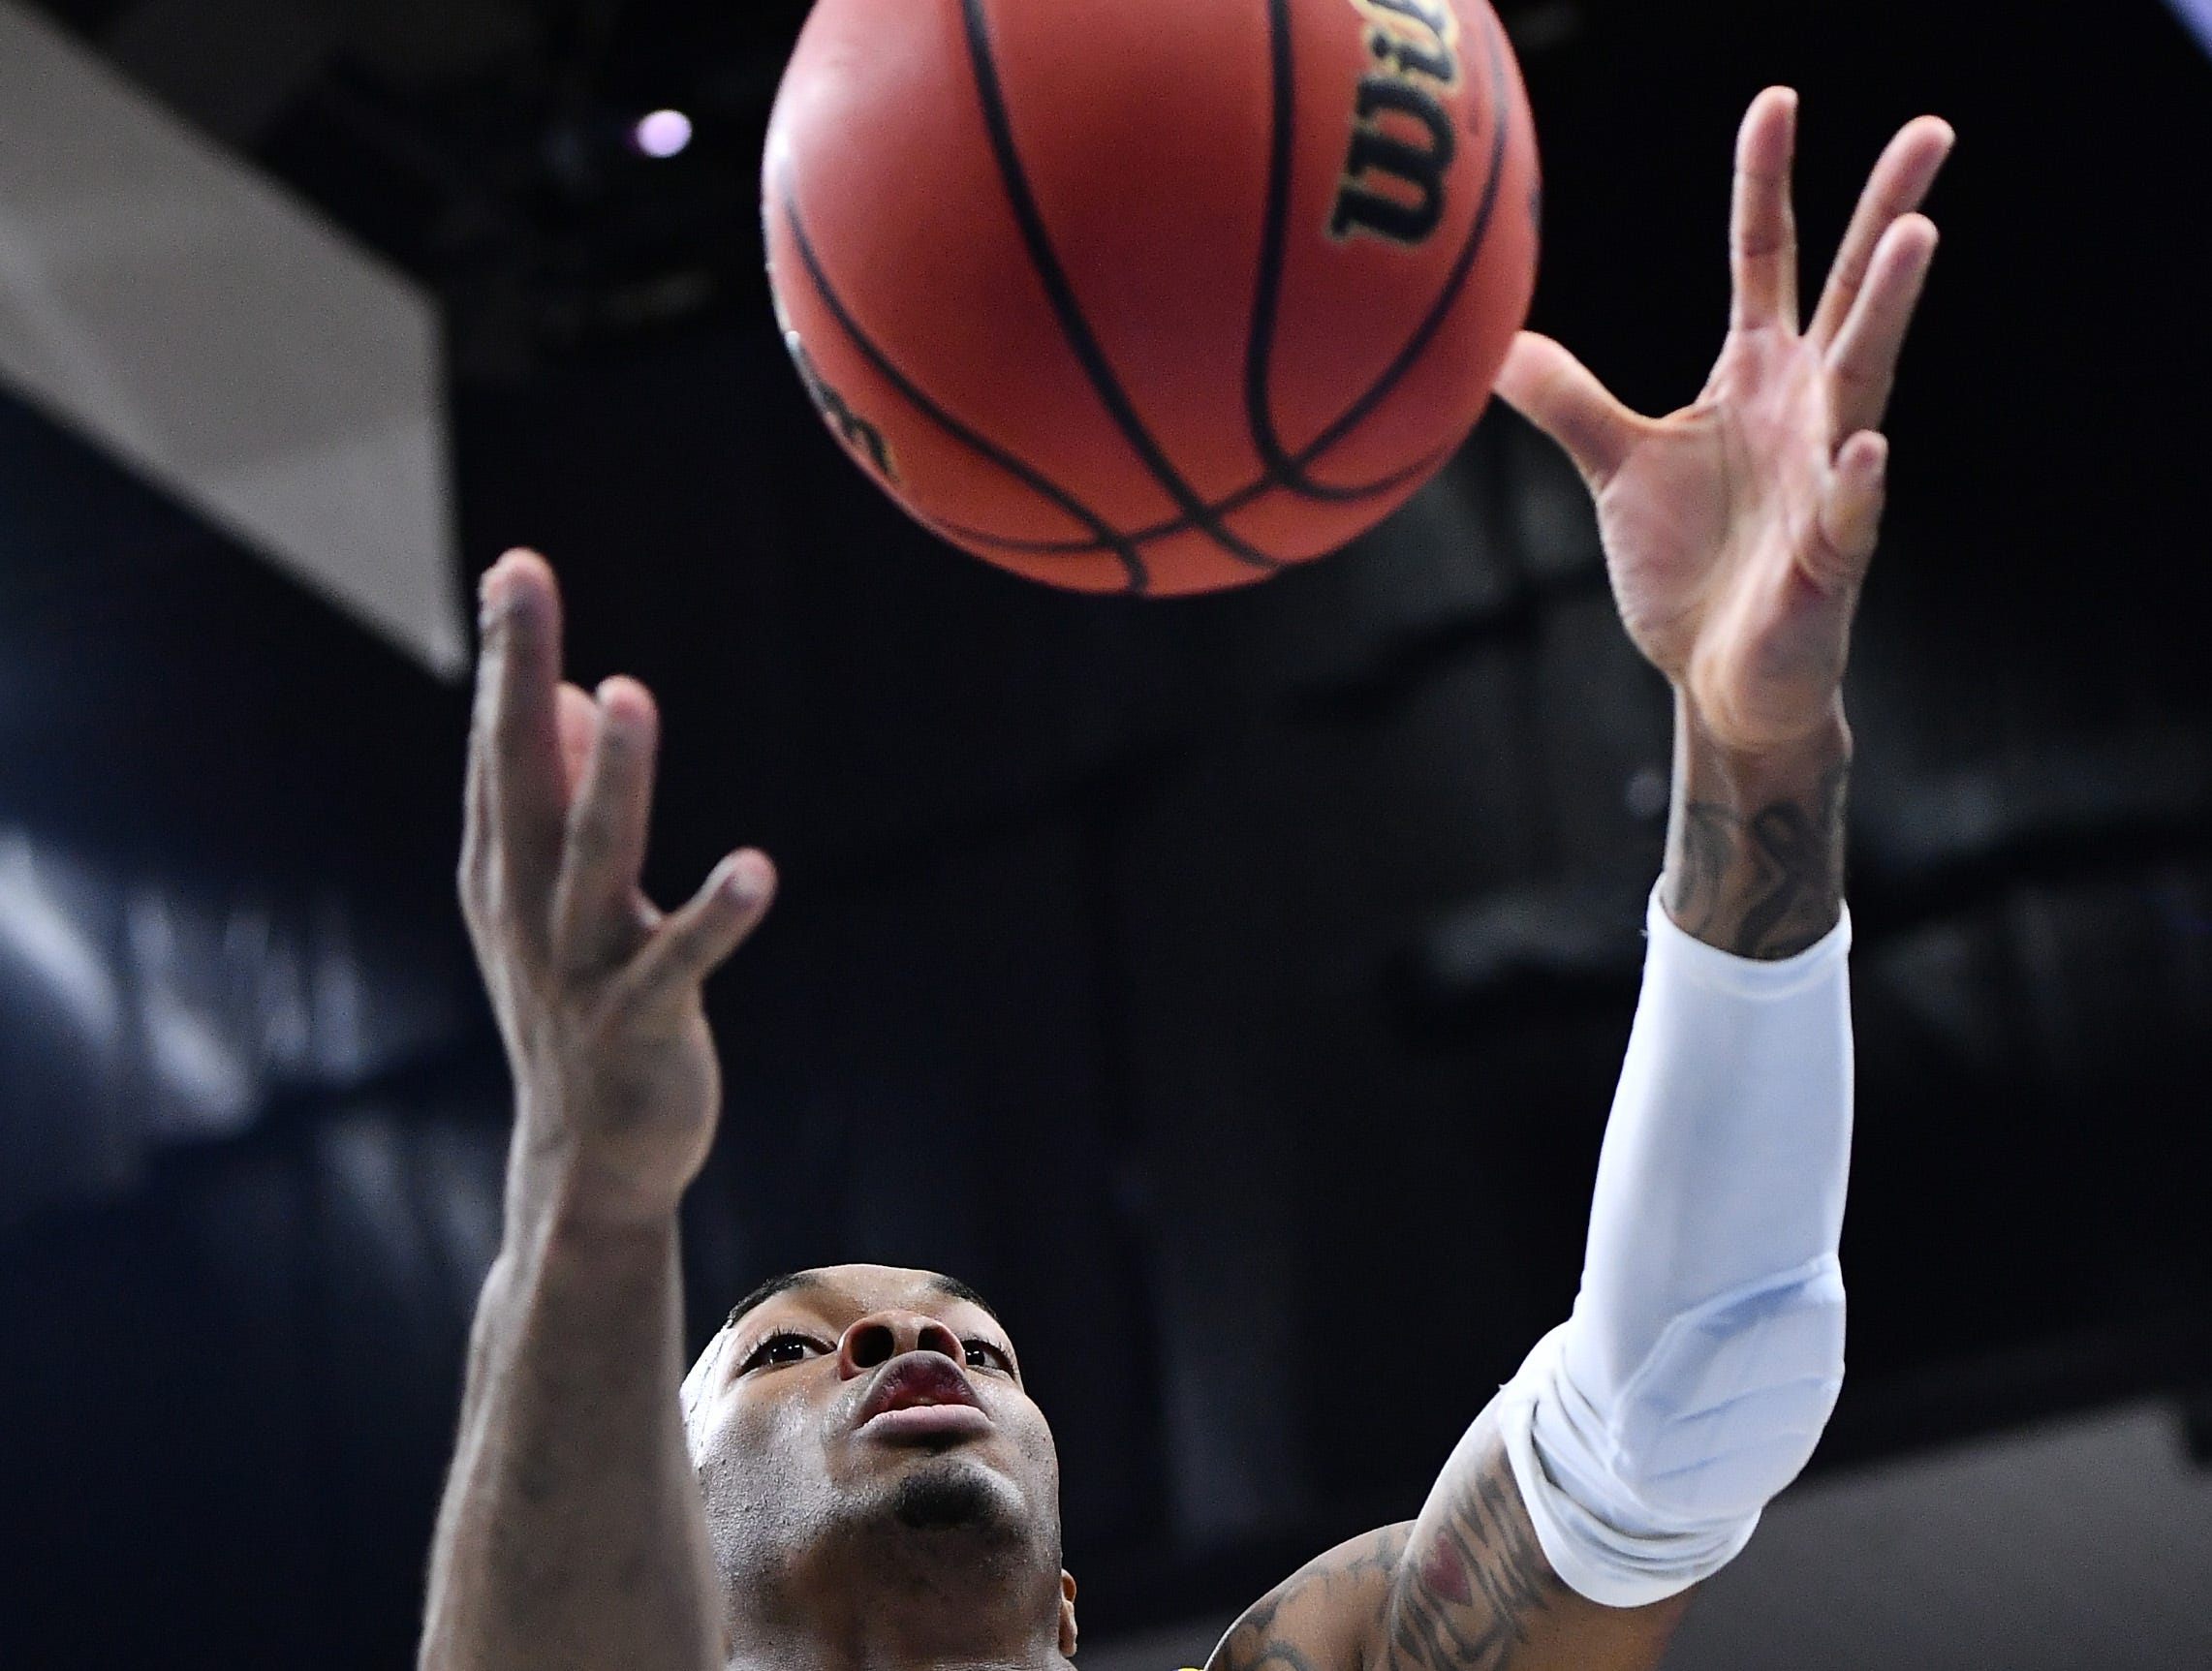 Mar 21, 2019; Jacksonville, FL, USA; LSU Tigers guard Javonte Smart (1) pulls in a rebound against the Yale Bulldogs during the second half in the first round of the 2019 NCAA Tournament at Jacksonville Veterans Memorial Arena. Mandatory Credit: John David Mercer-USA TODAY Sports